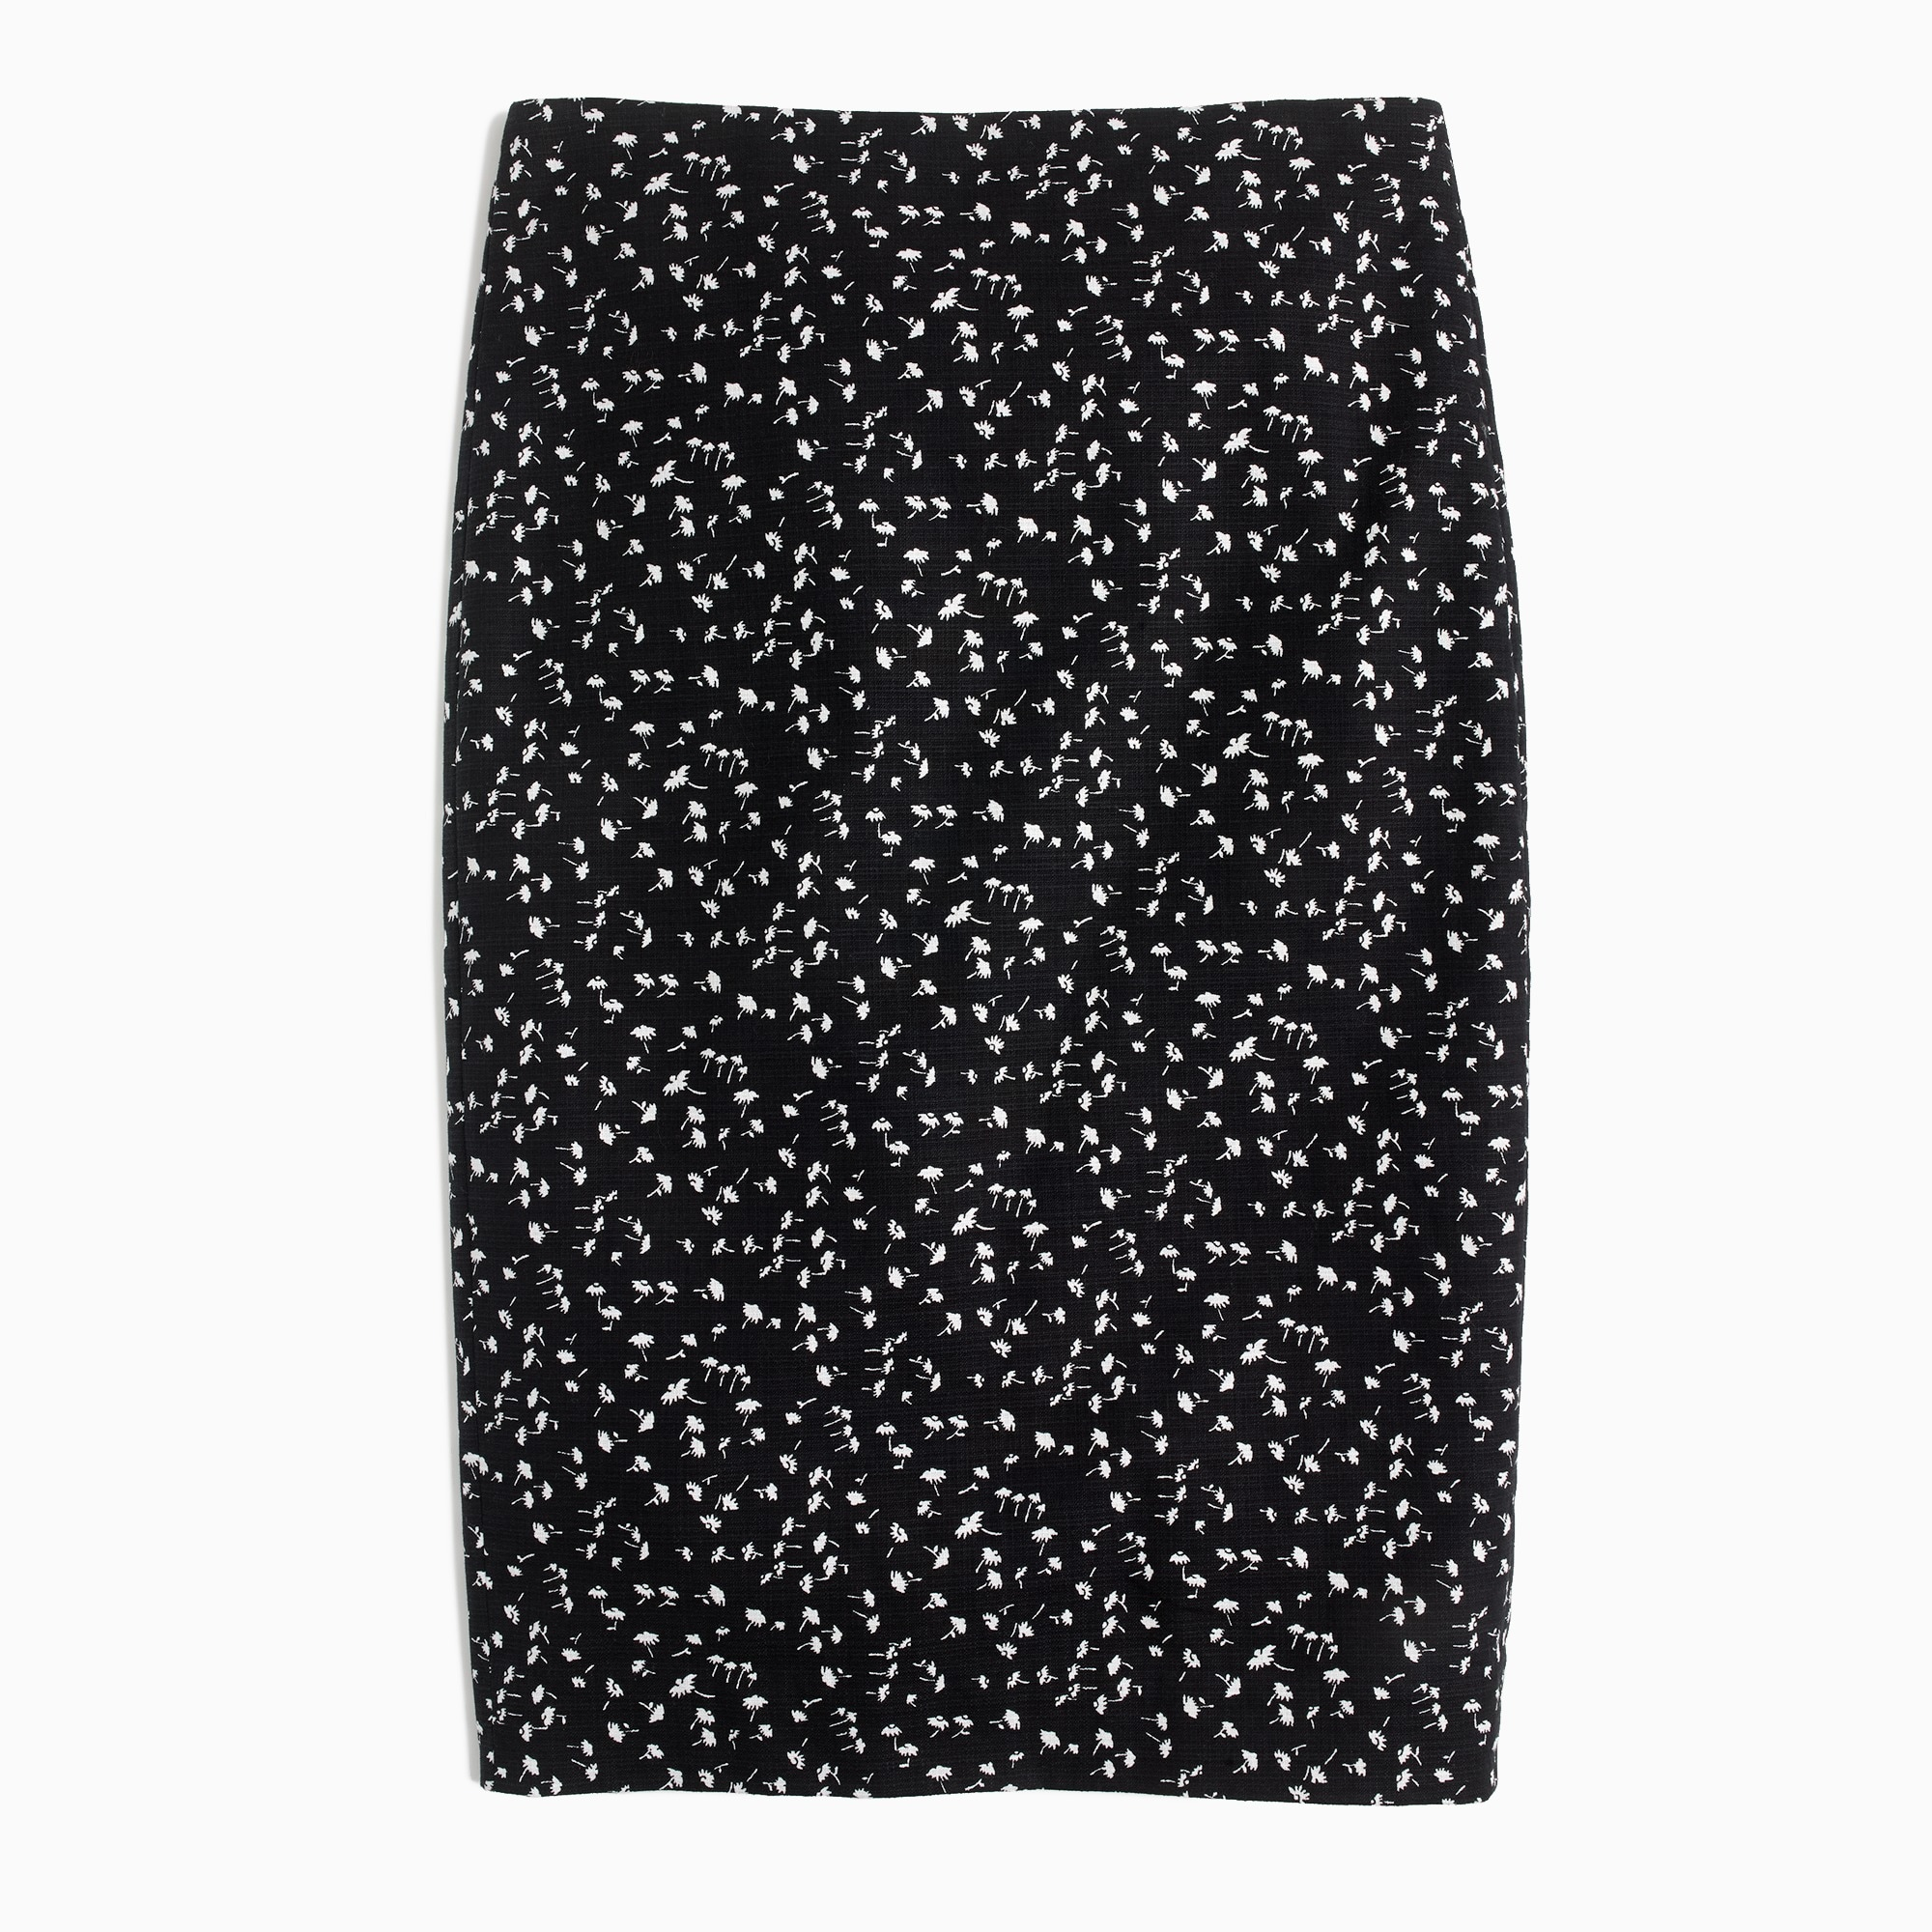 Image 1 for Pencil skirt in daisy floral